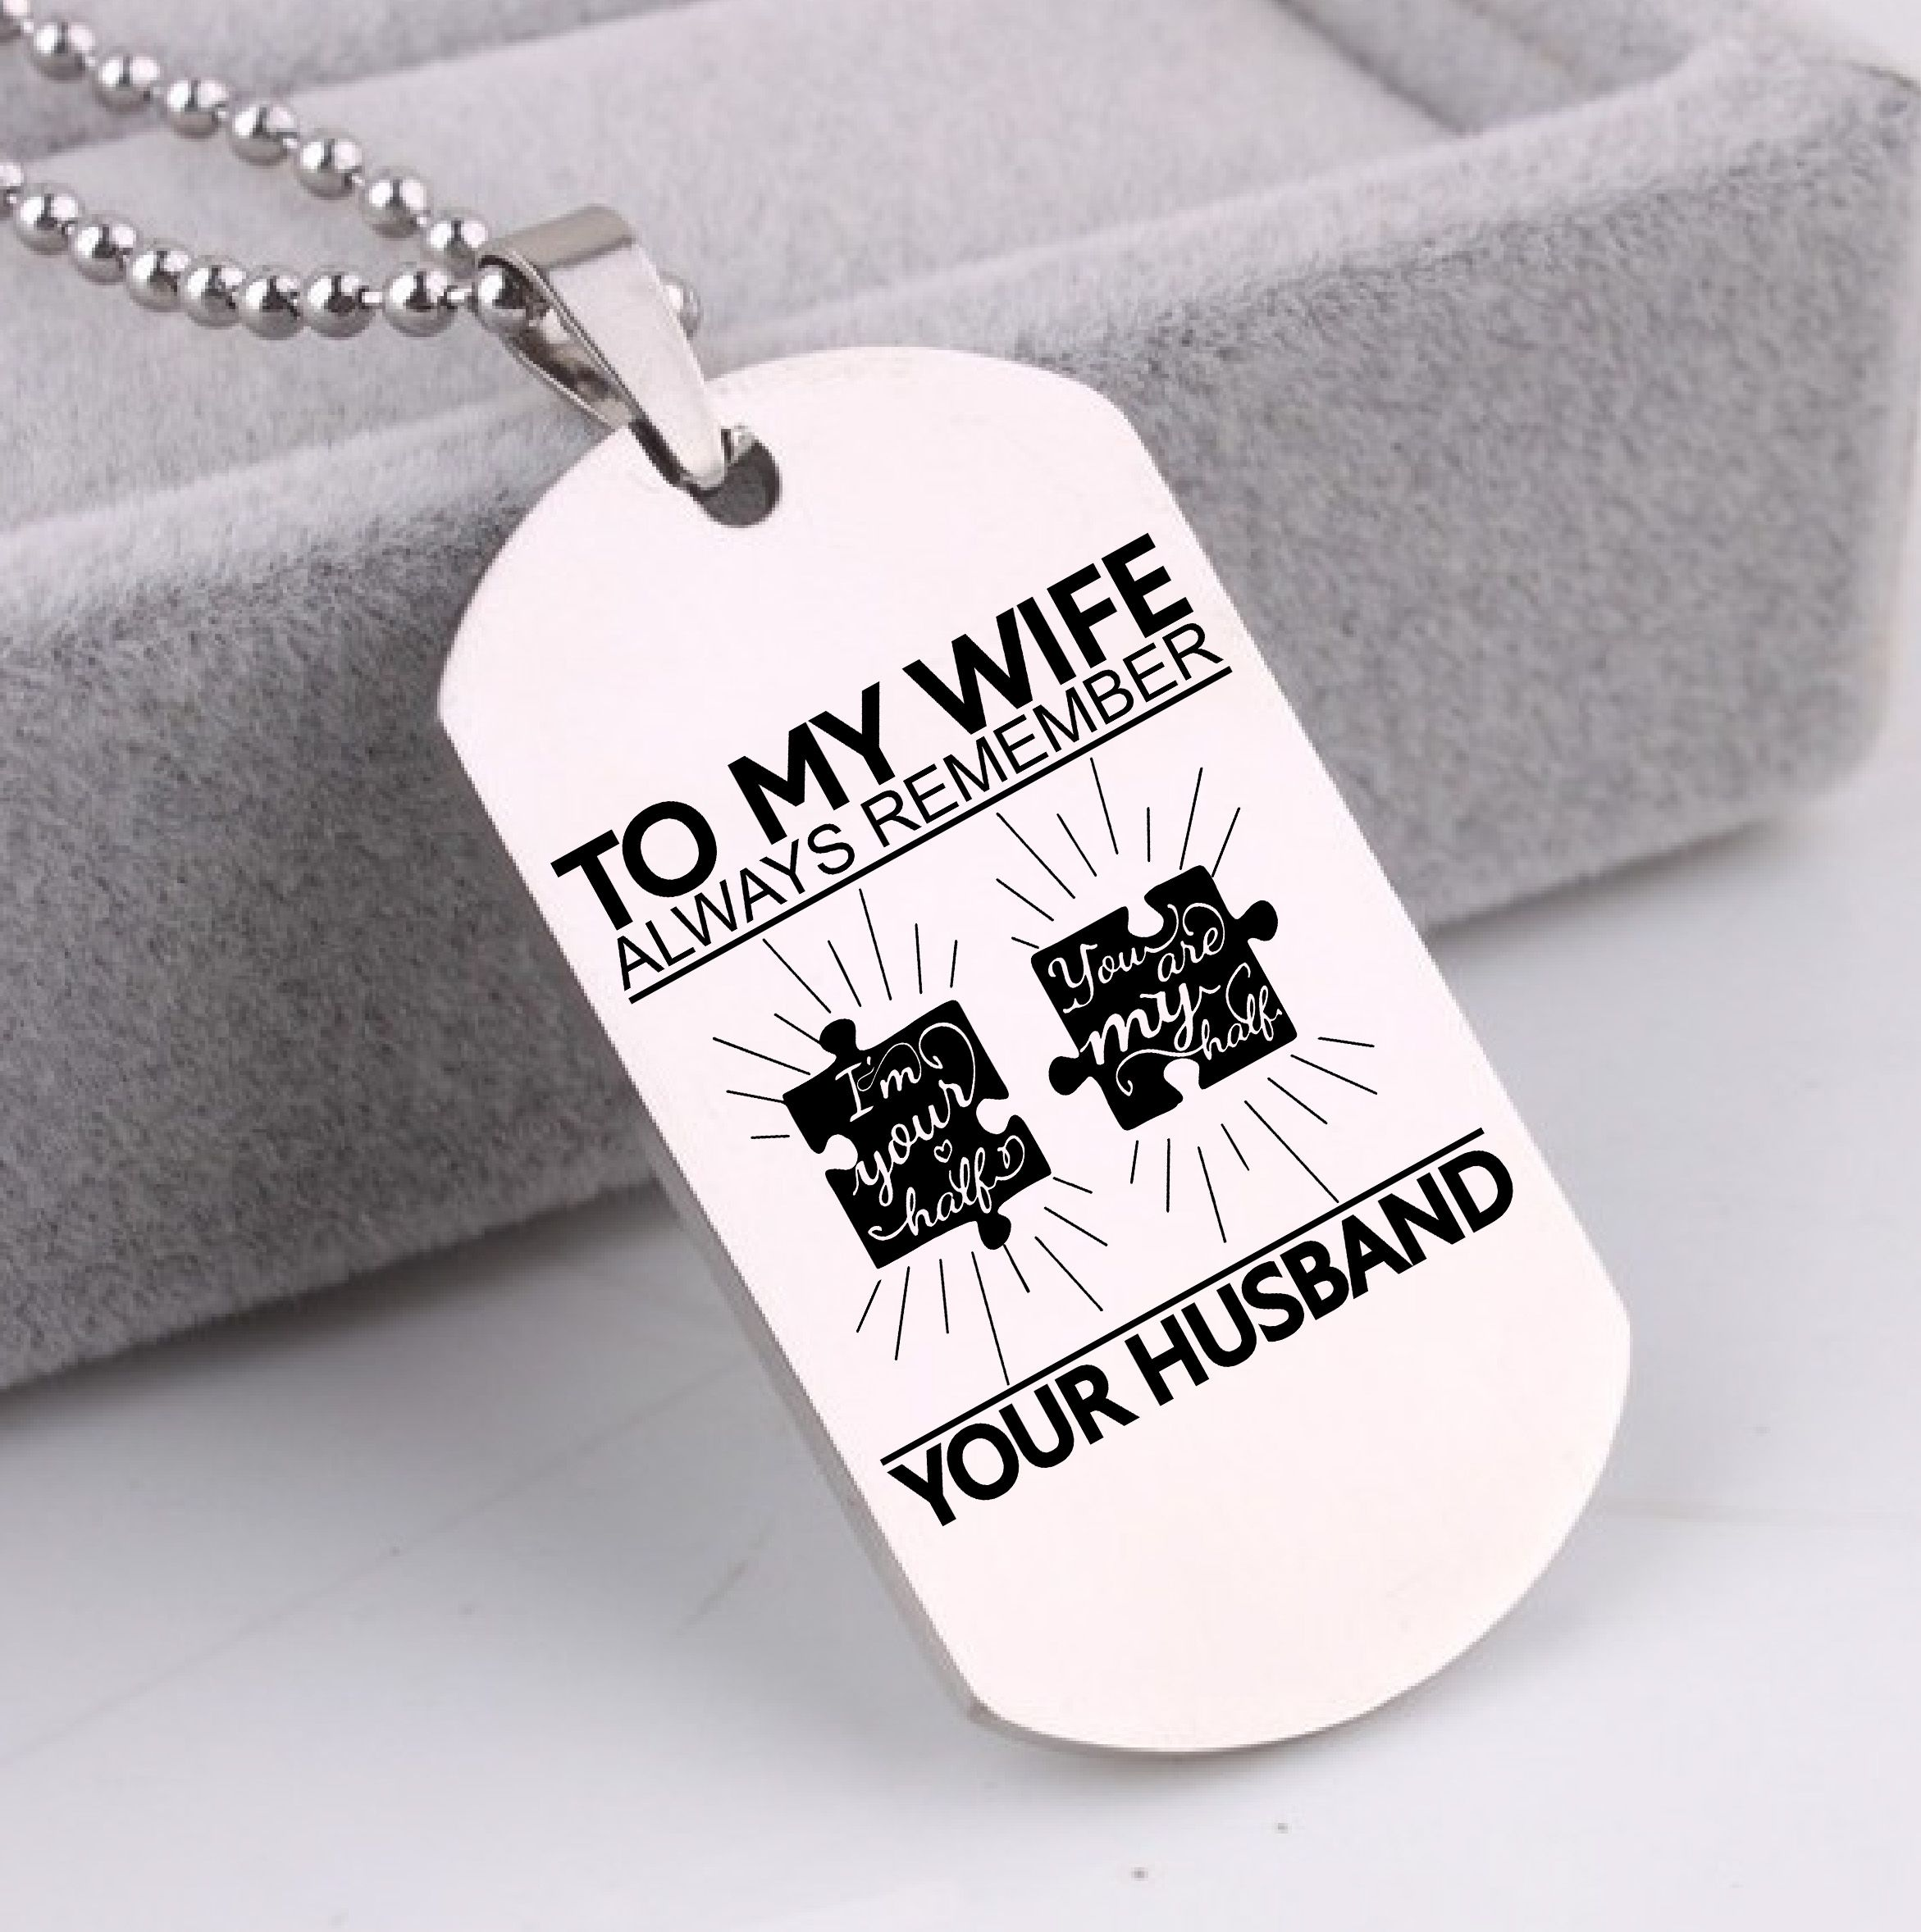 Perfect Christmas Gift For Wife.Perfect Gift For Your Wife Family Gifts Birthday Gift